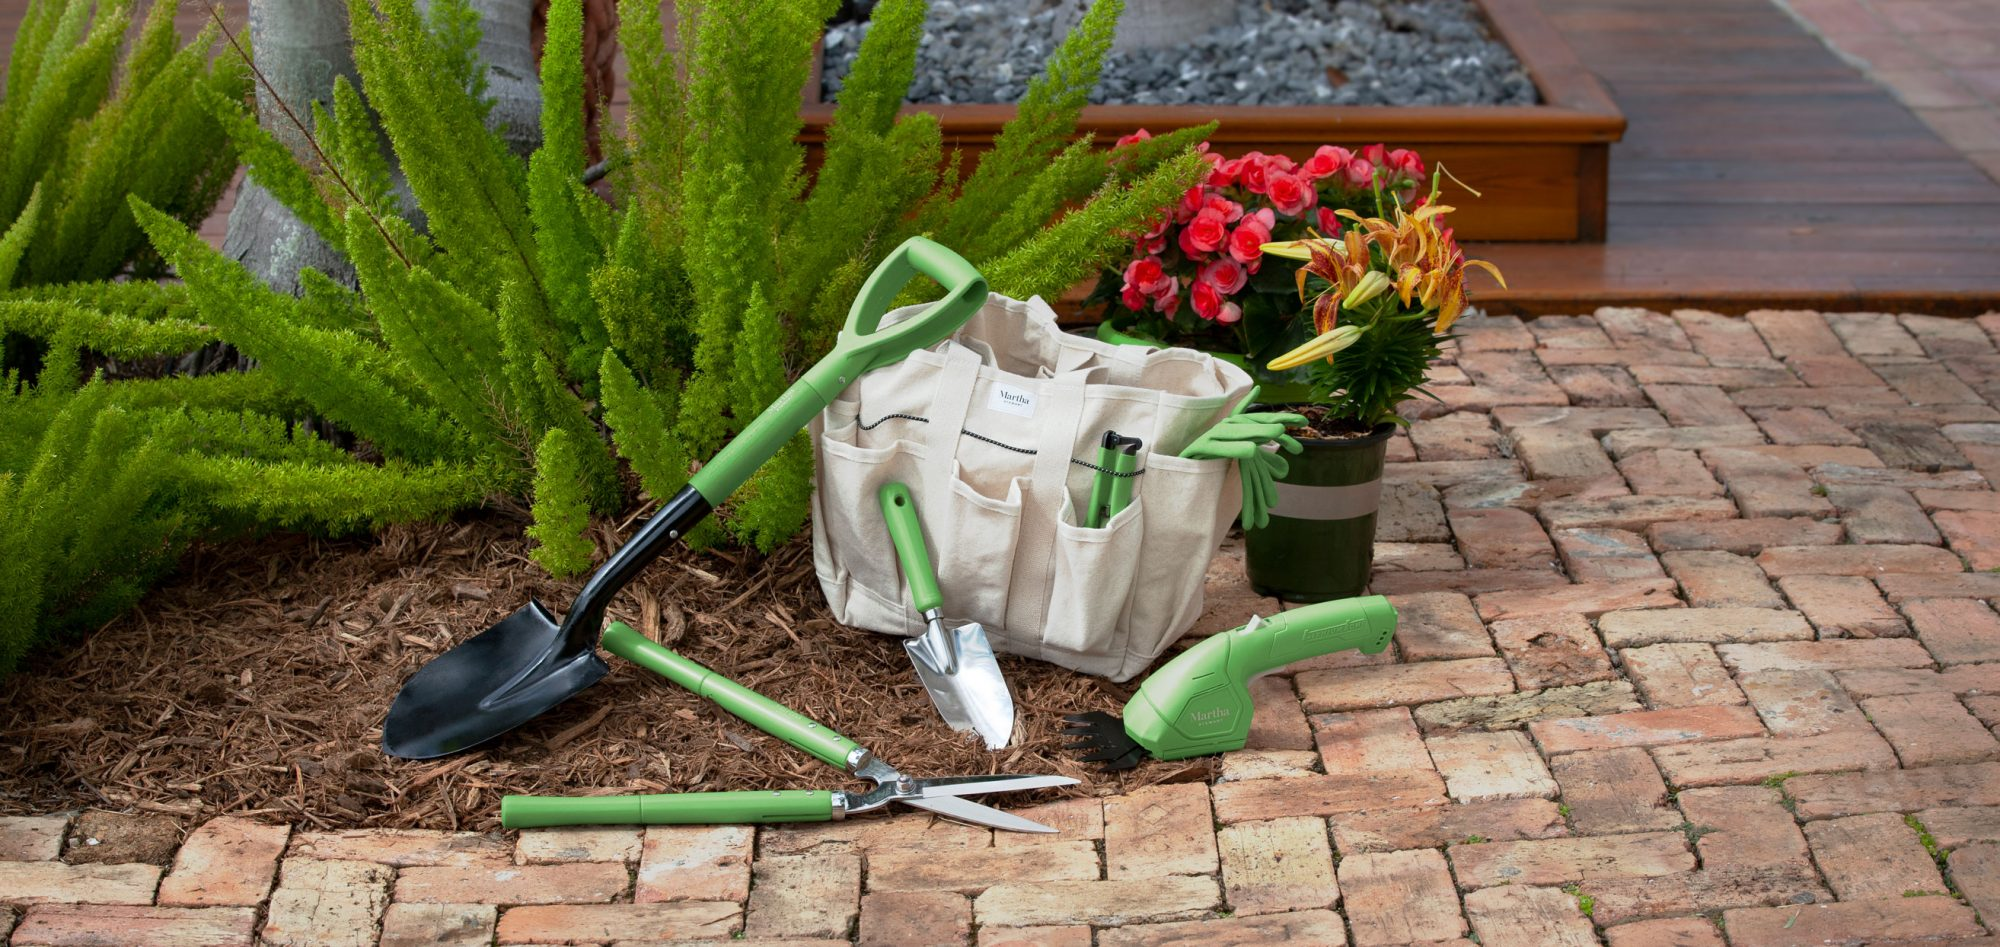 martha stewart collection garden tools